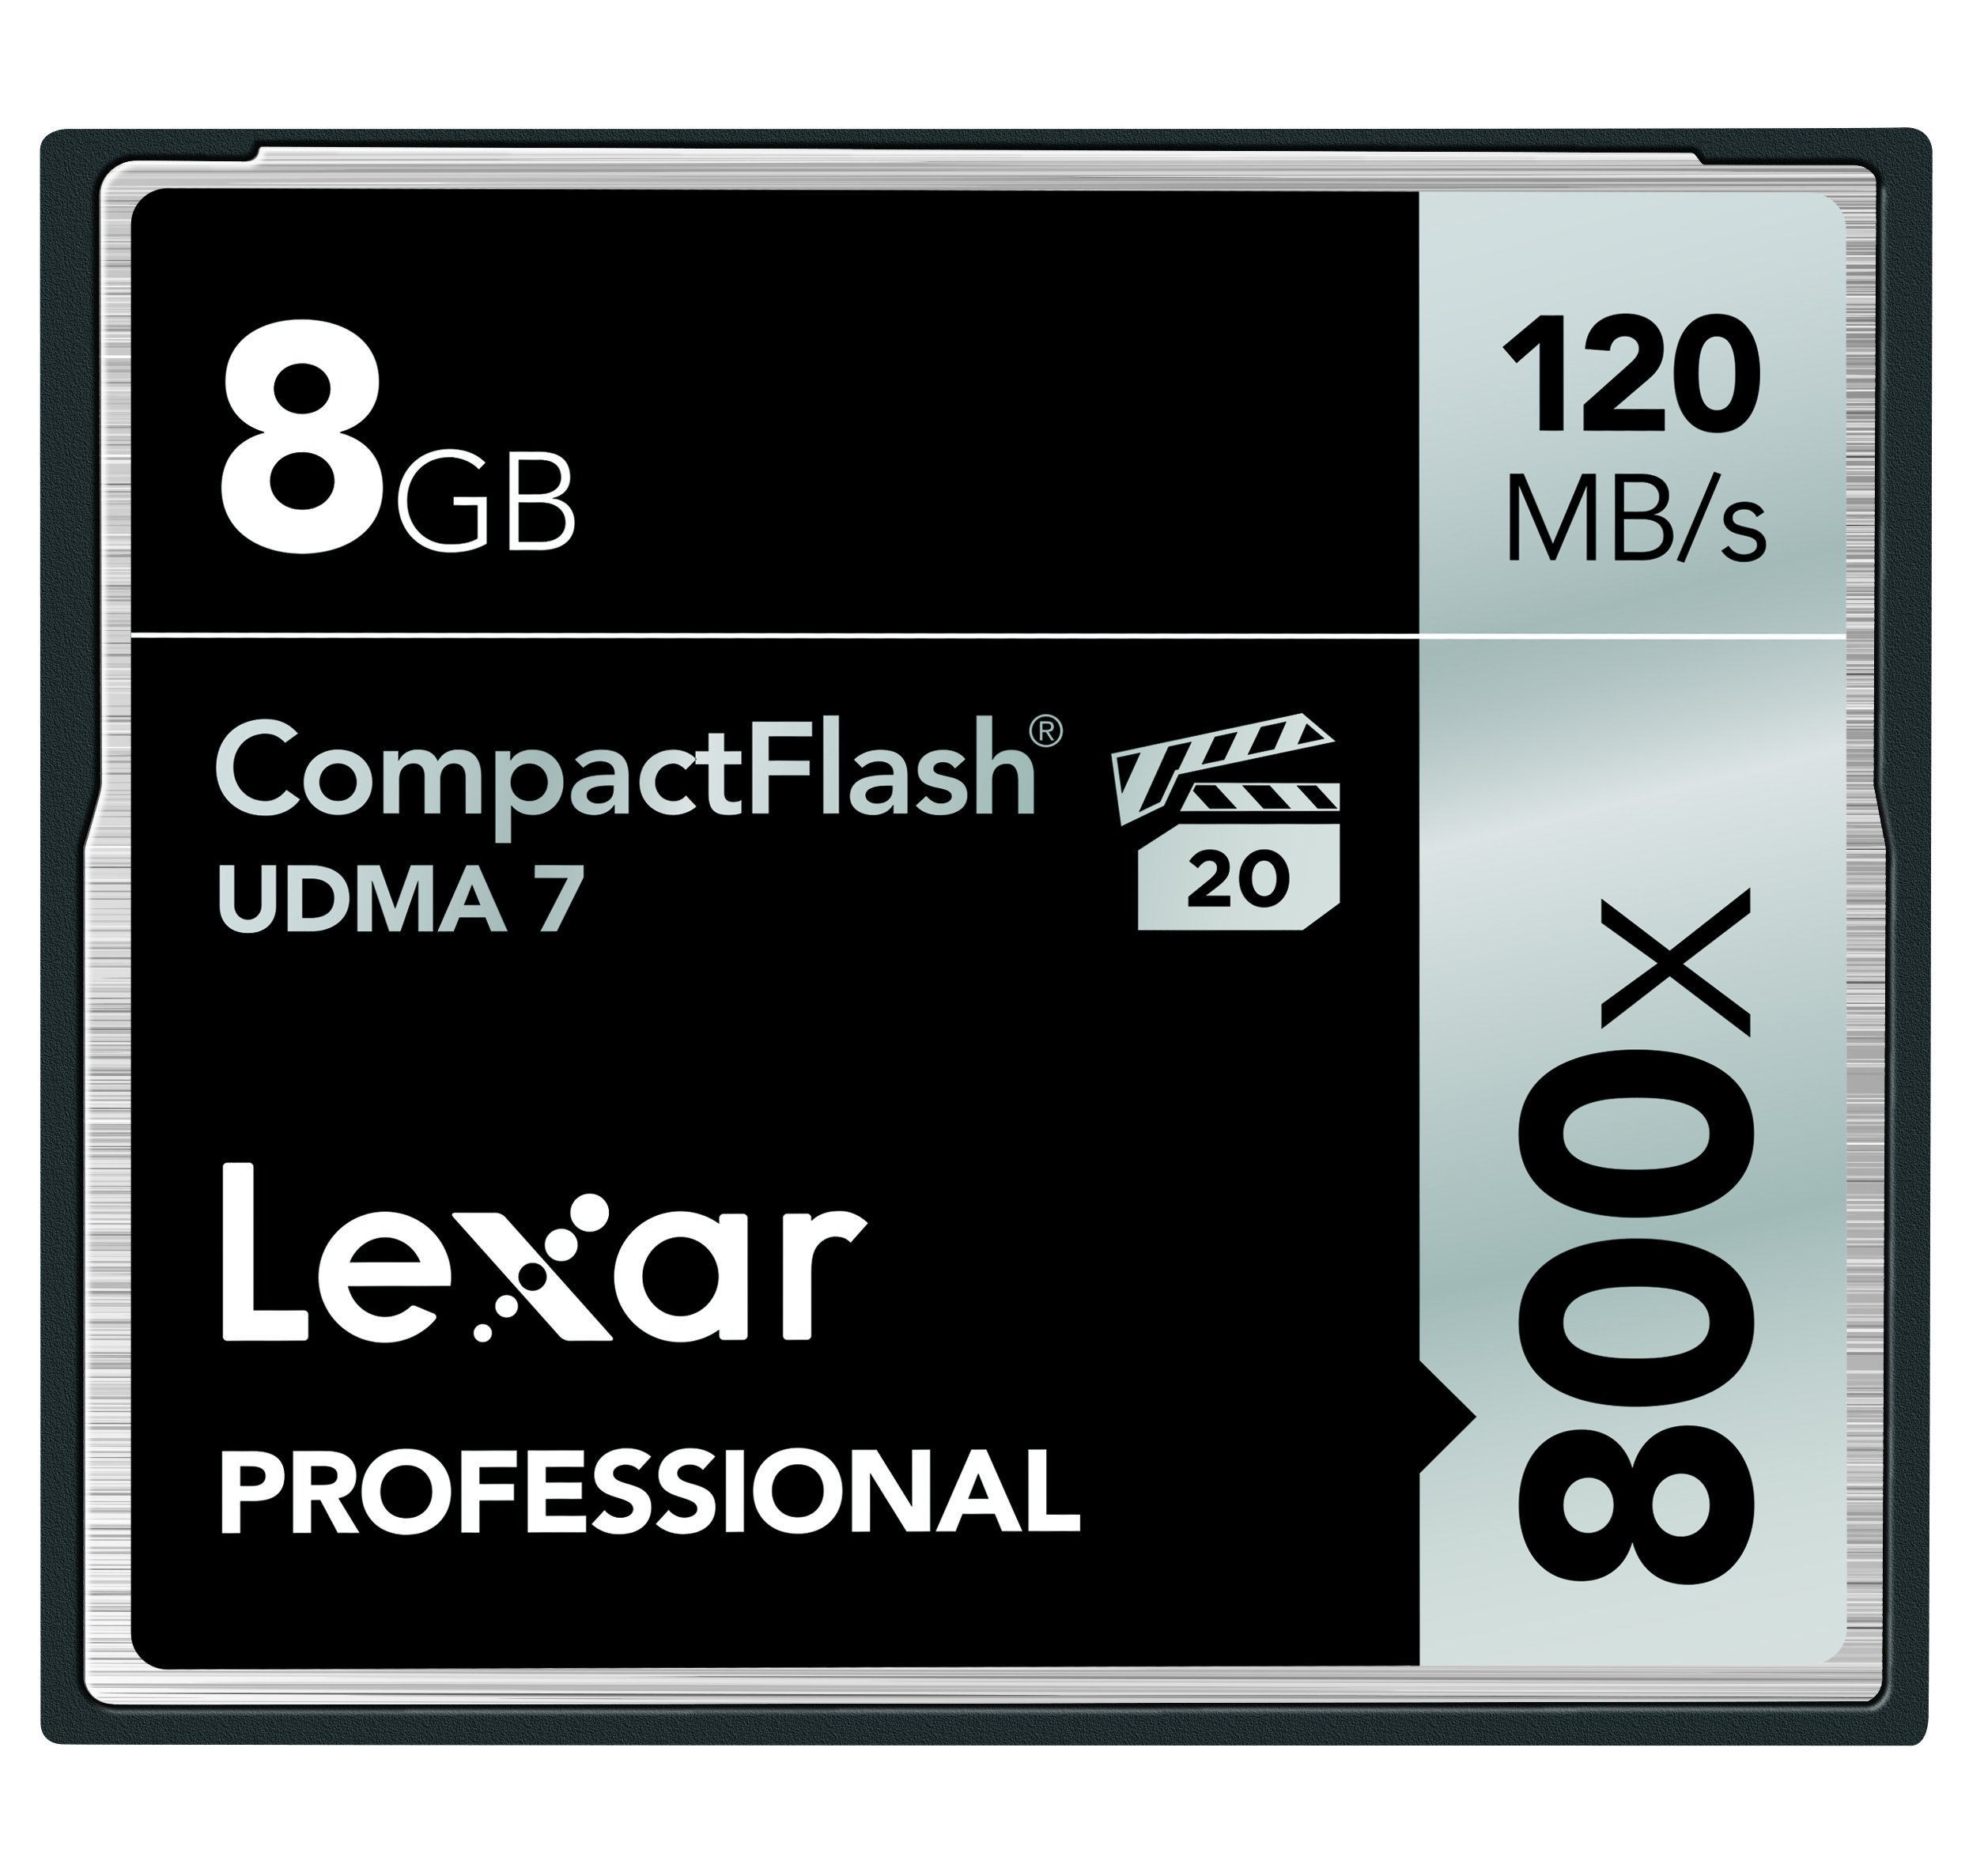 Lexar Professional 800x 8GB VPG-20 CompactFlash Card (Up to 120MB/s Read) w/Free Image Rescue 5 Software LCF8GBCRBNA800 by Lexar